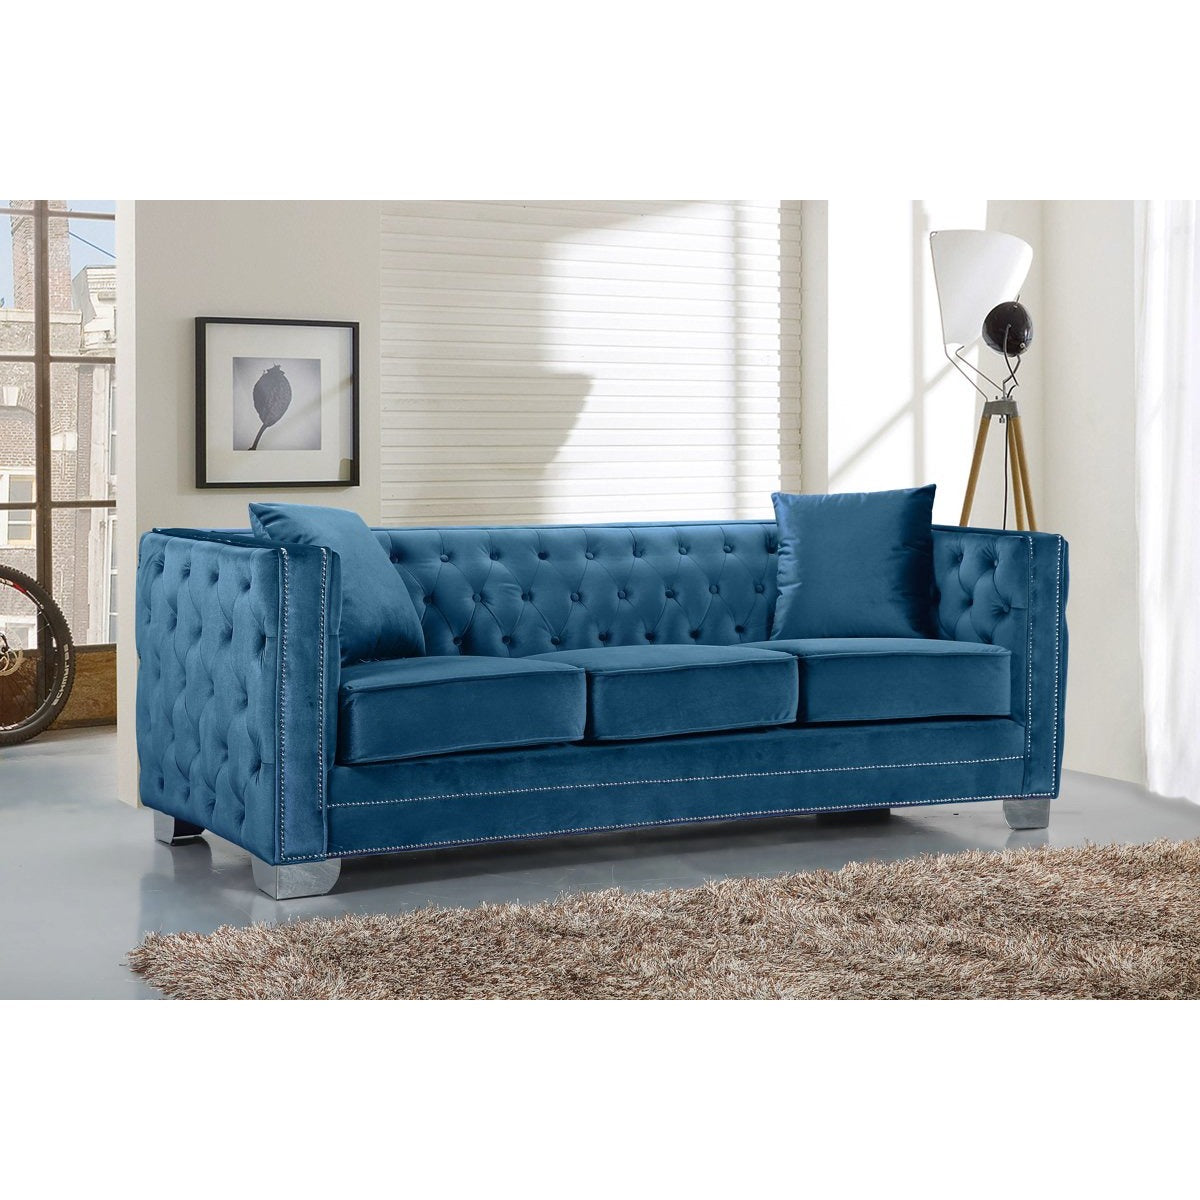 Meridian Furniture Reese Light Blue Velvet Sofa Minimal Modern